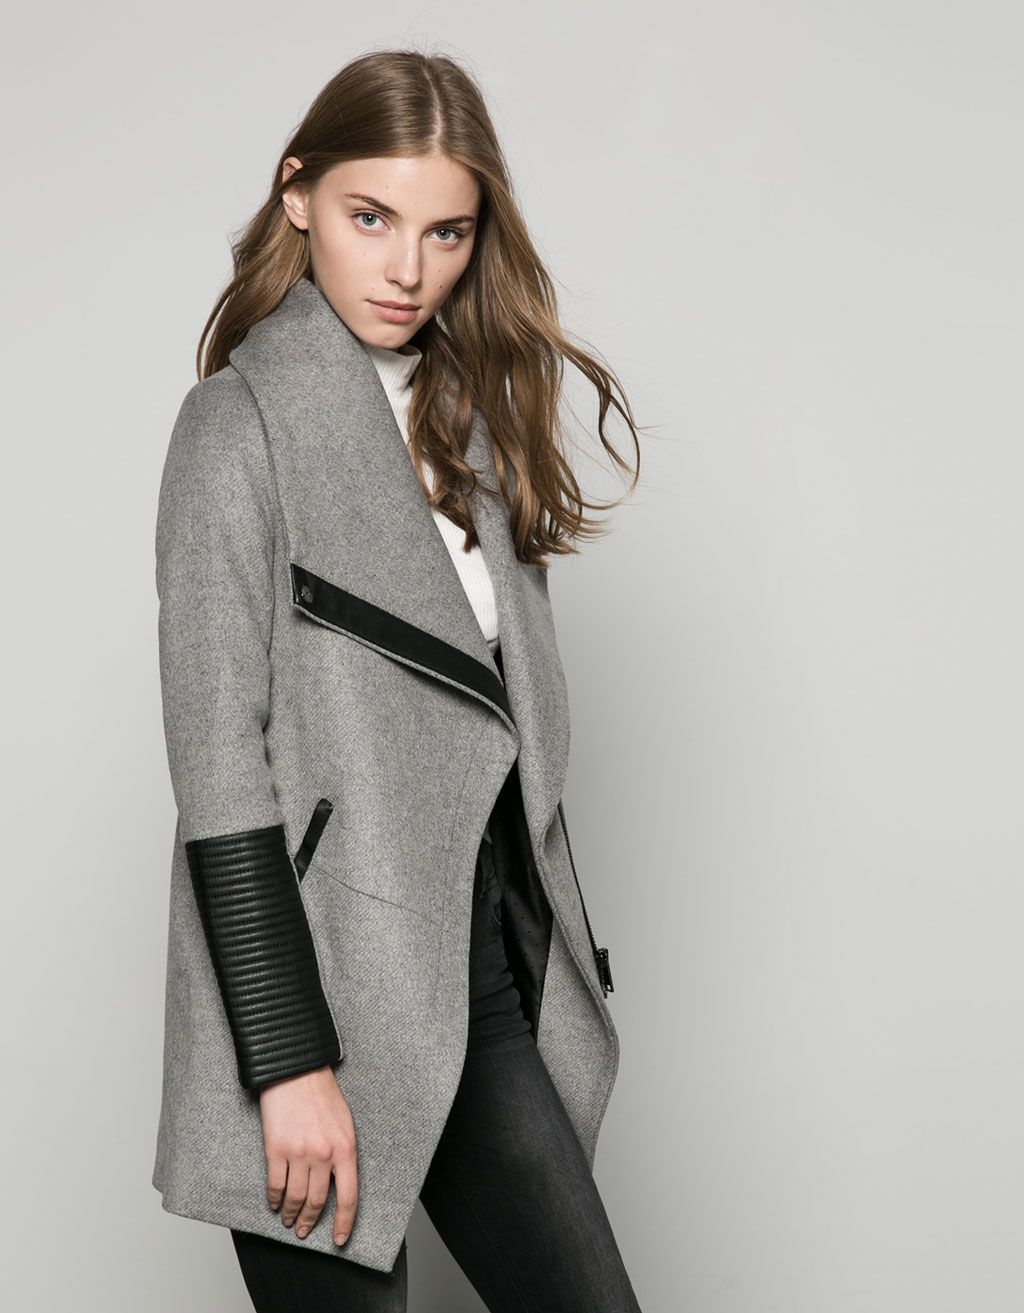 Wool coat with imitation leather detail - Coats - Bershka Bosnia and  Herzegovina 327f40b2d